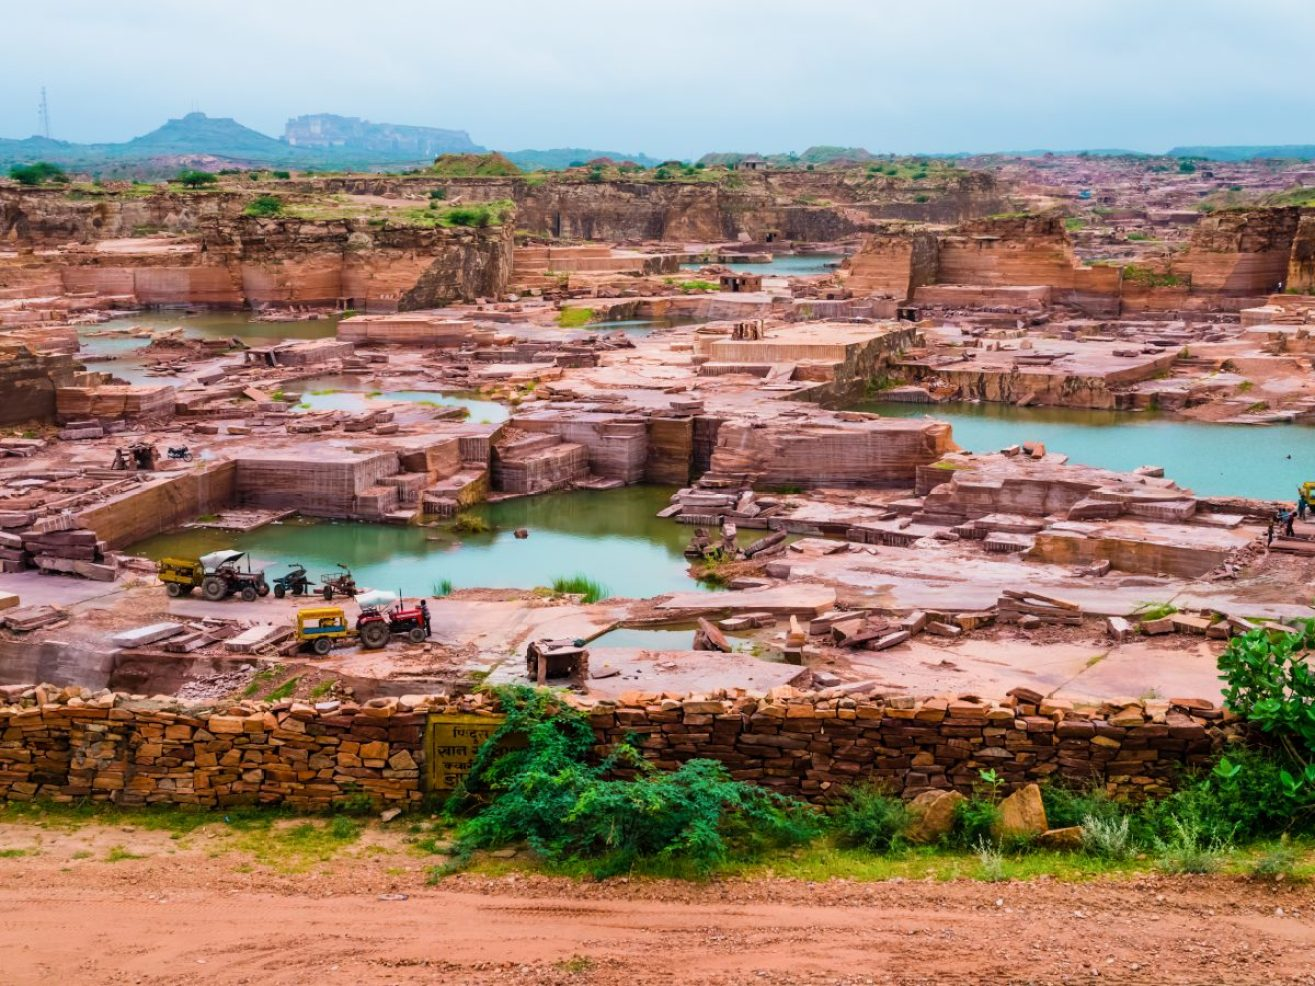 Stock Photo - Open-pit red sandstone mine, Jodhpur, Rajasthan, India